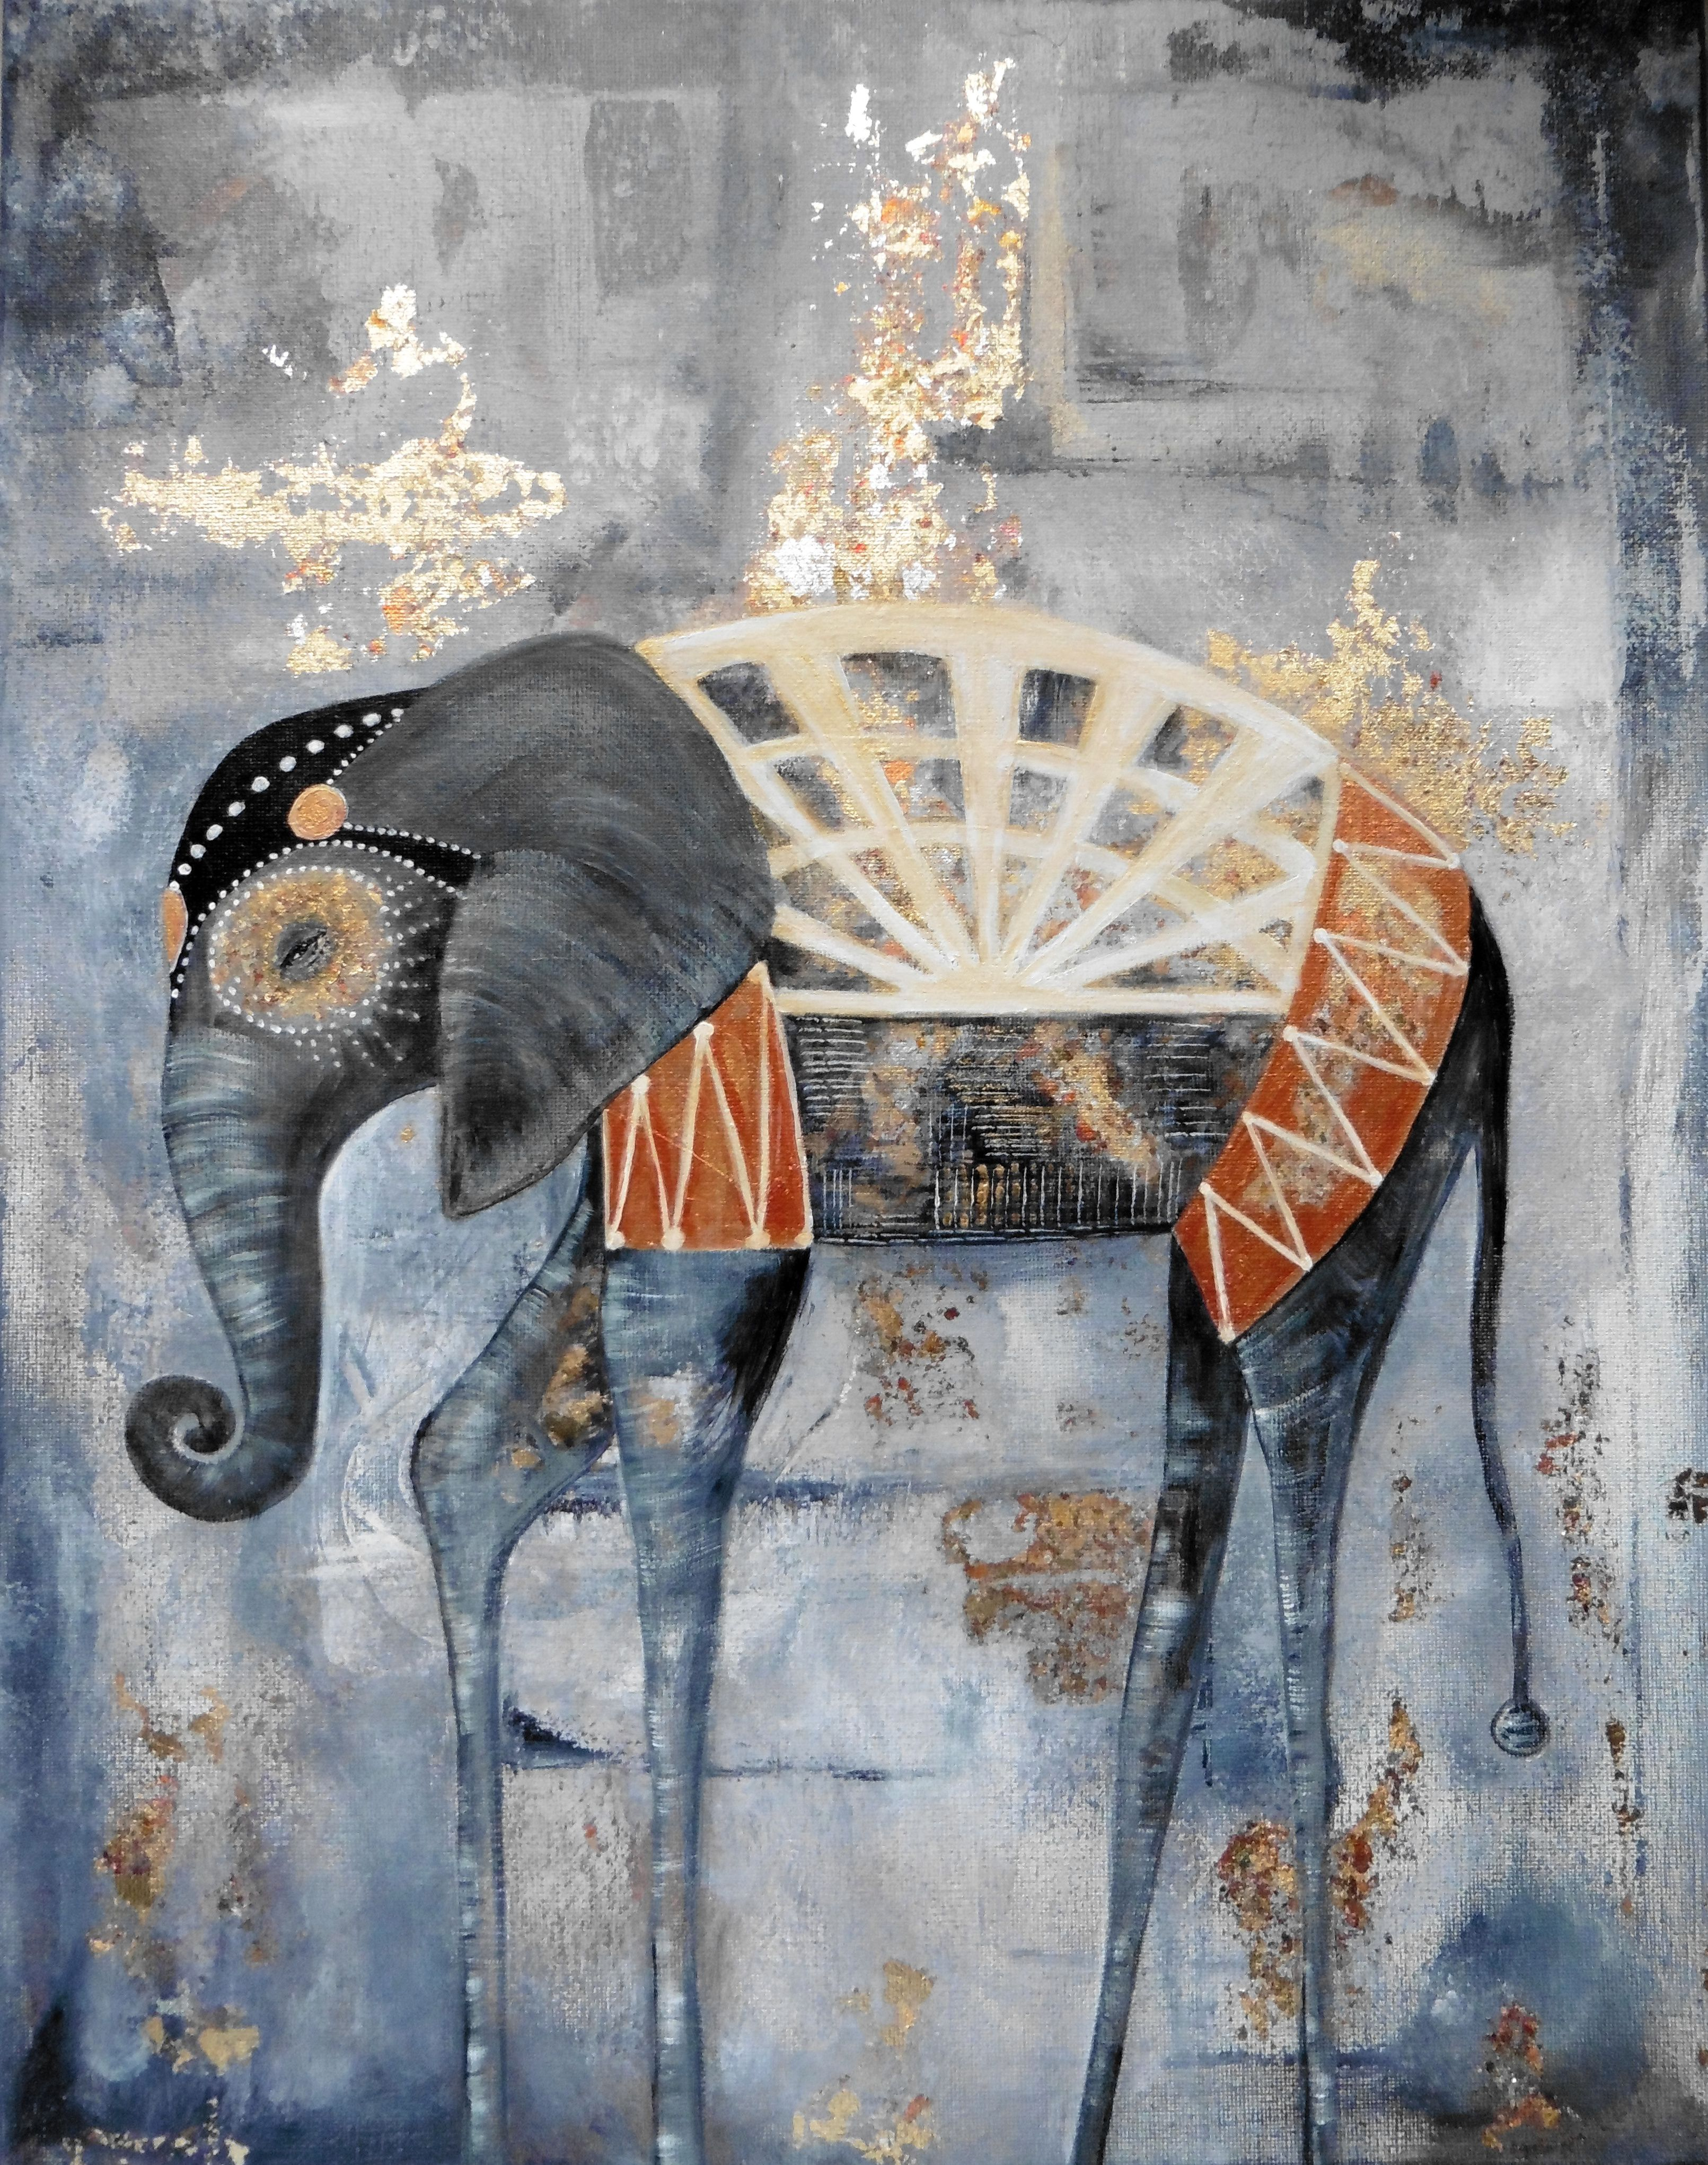 Abstract Elephant Painting With Gilding Flakesgold Leaf By Abigail Yarworth